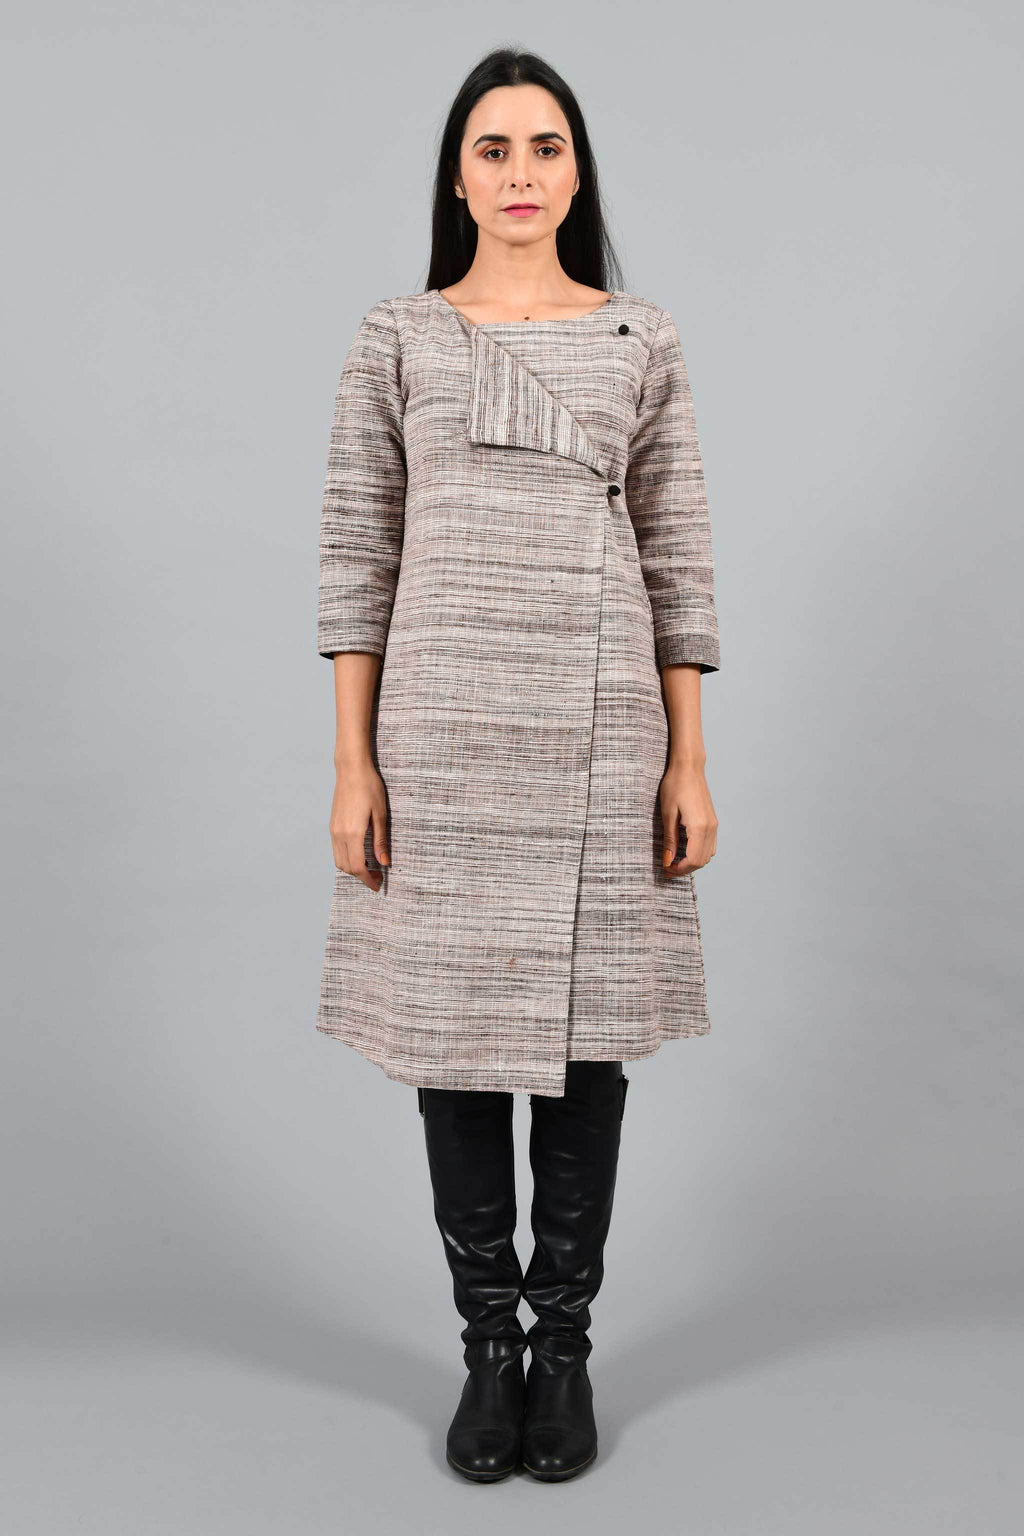 Front pose of an Indian Womenswear female model wearing brown-black textured handspun and handwoven cotton angrakha dress by Cotton Rack with black boots.